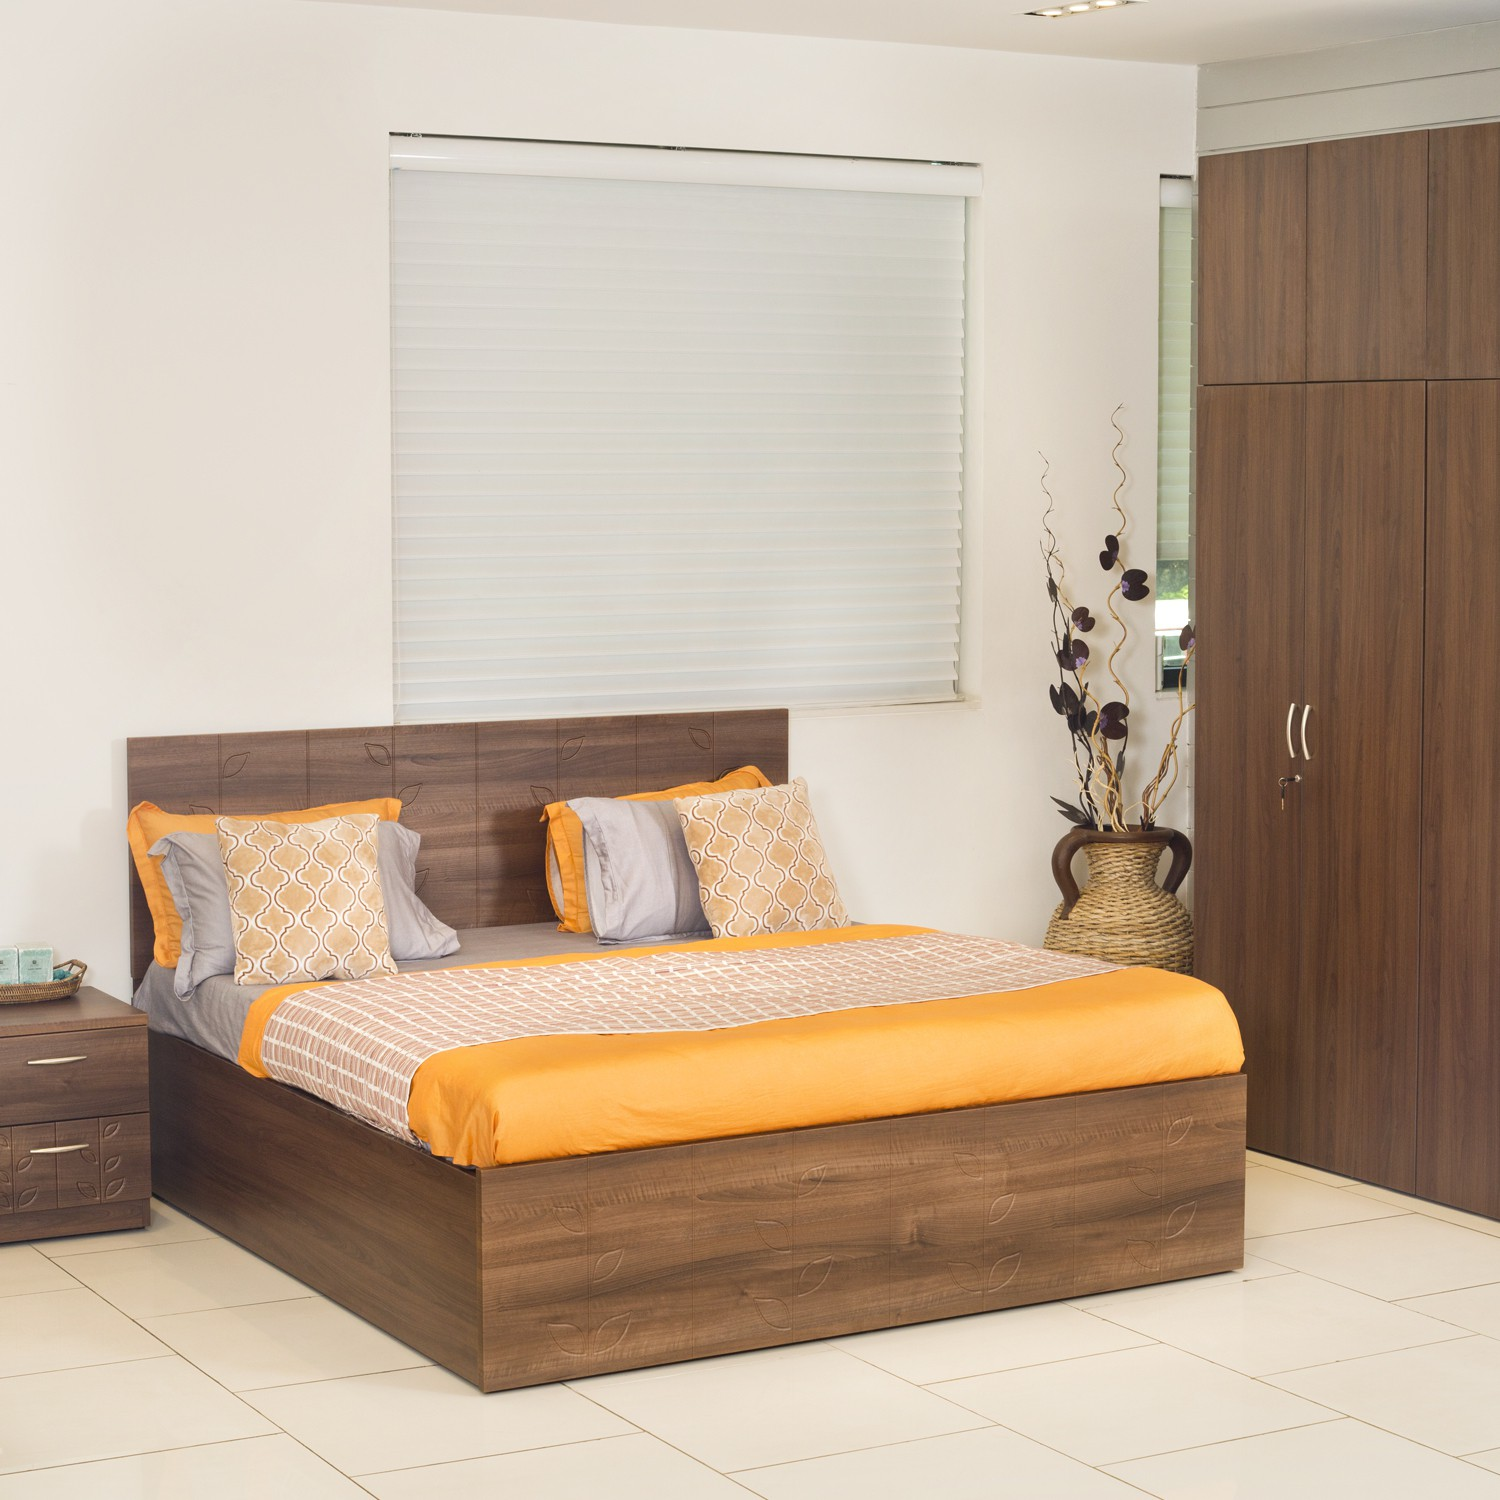 Godrej interio engineered wood bed side table wardrobe price in india december 2017 Godrej interio home furniture price list